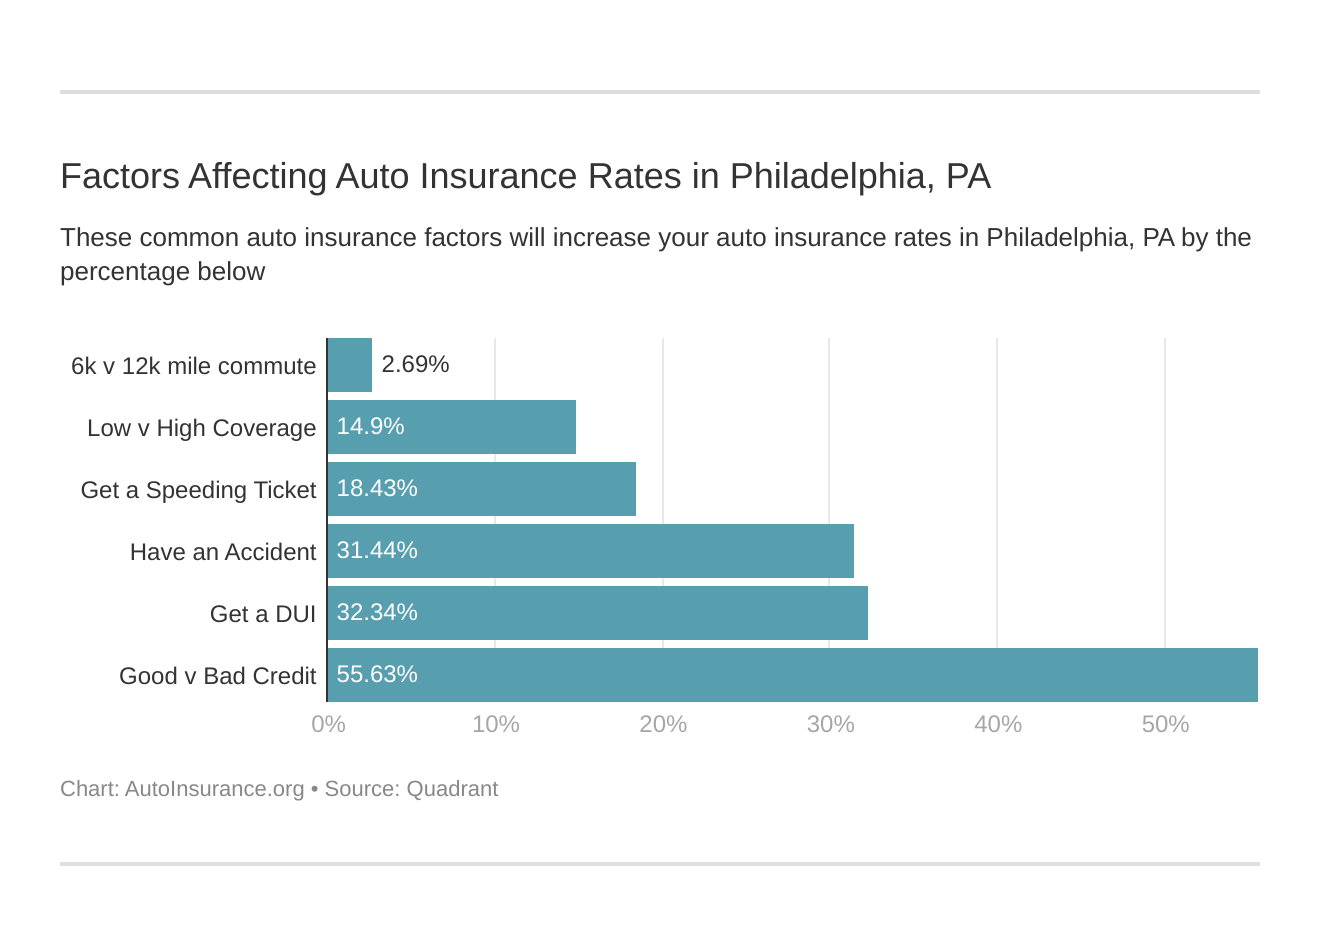 Factors Affecting Auto Insurance Rates in Philadelphia, PA